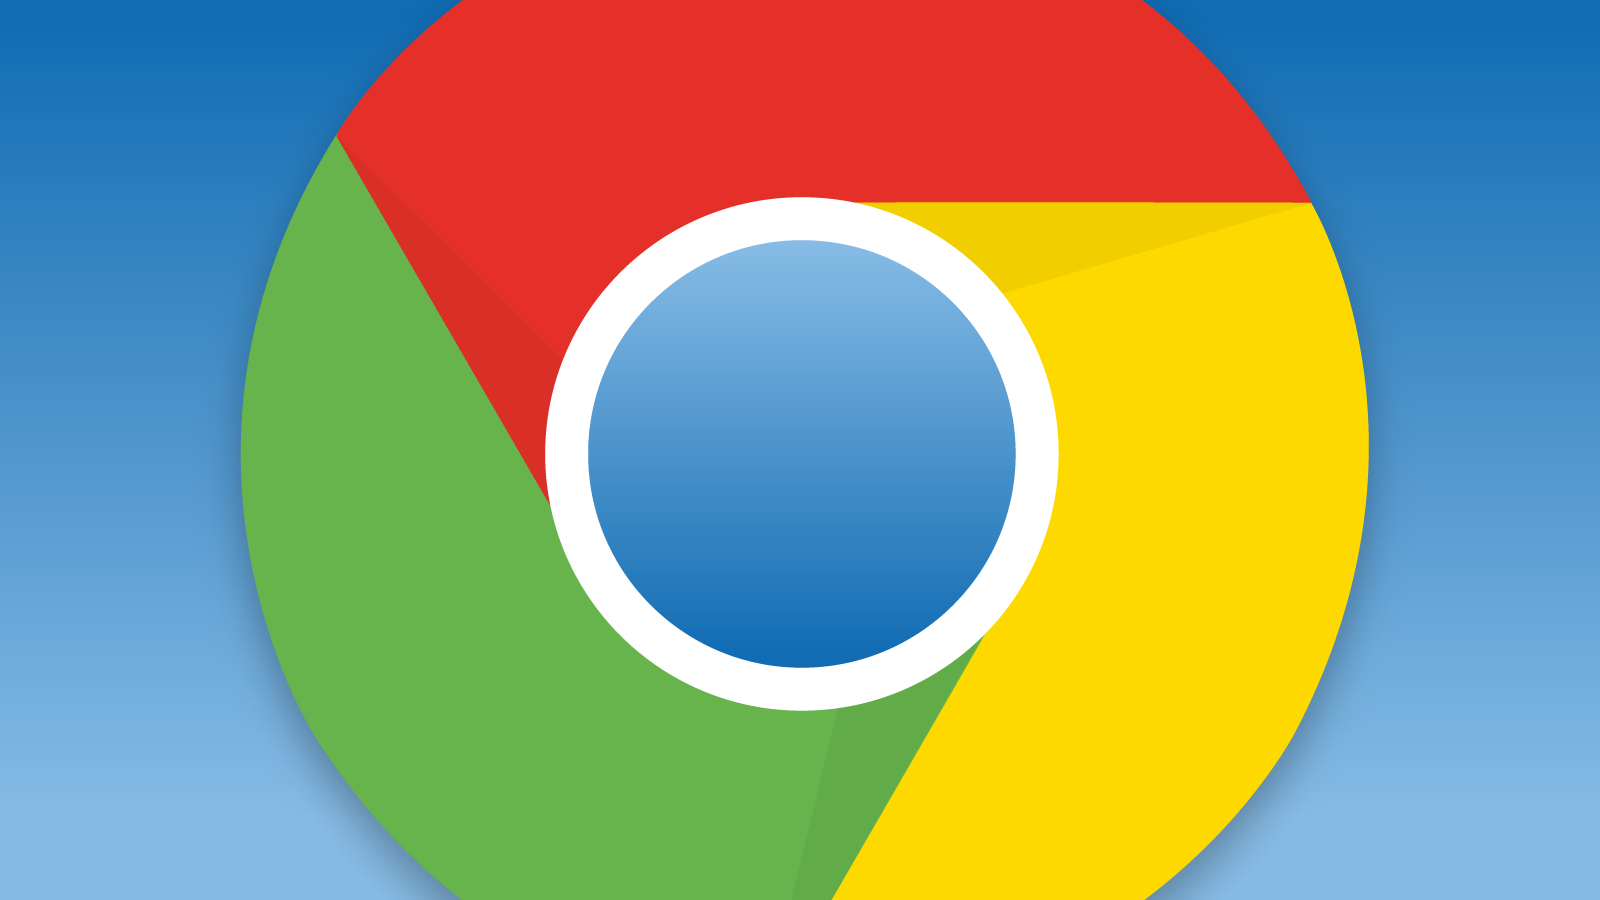 Google is fighting with Symantec over encrypting the